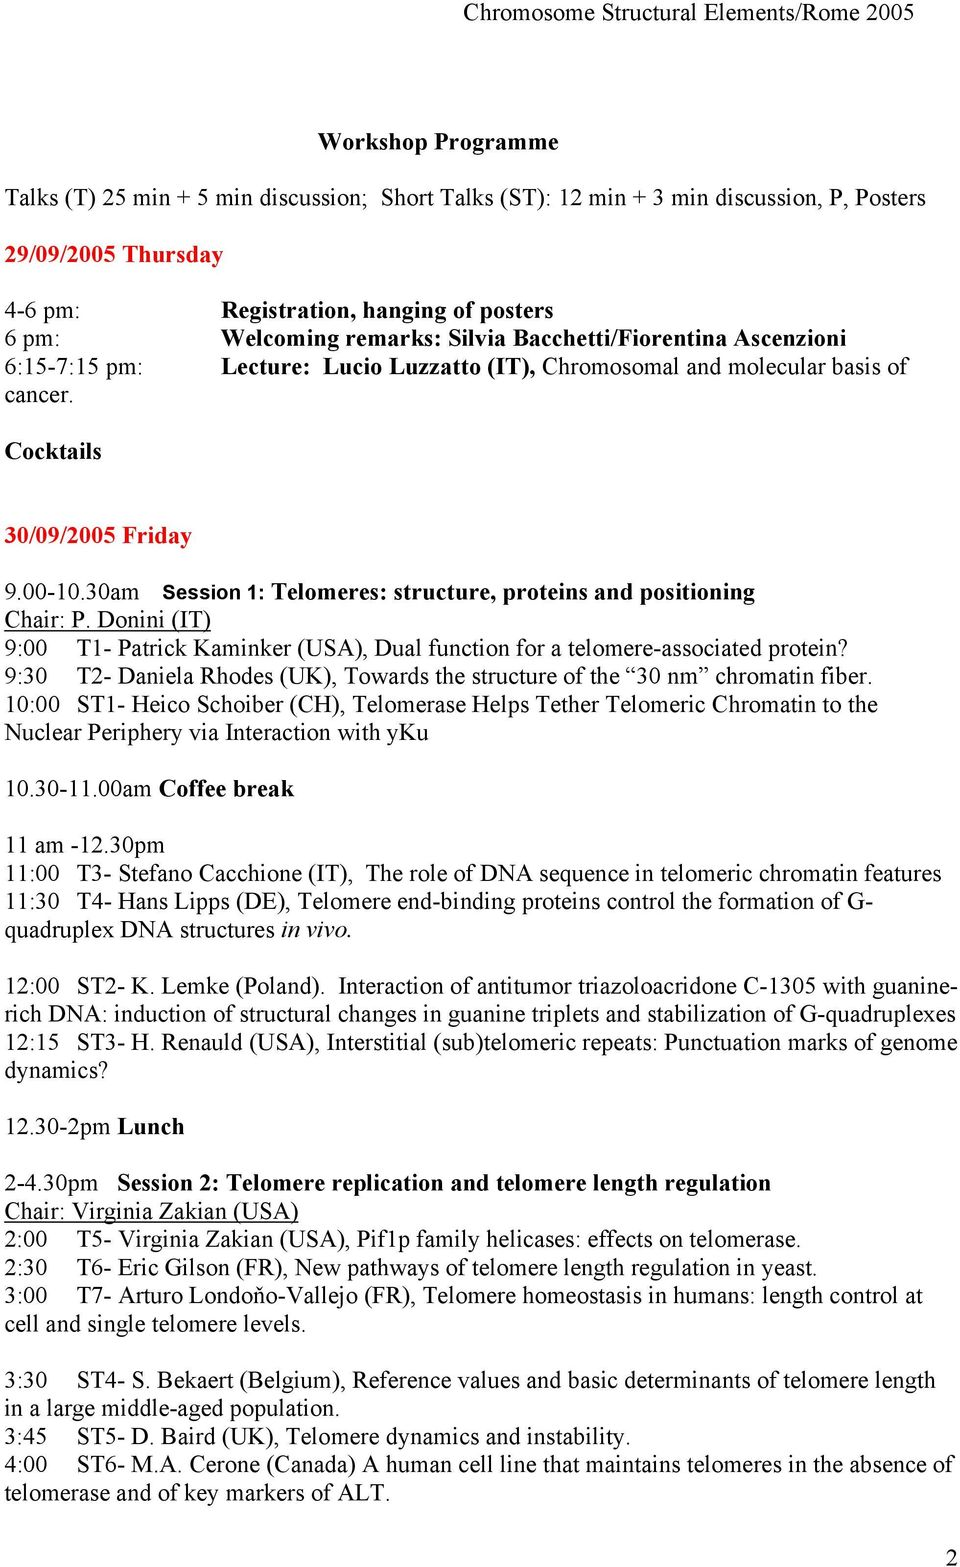 30am Session 1: Telomeres: structure, proteins and positioning Chair: P. Donini (IT) 9:00 T1- Patrick Kaminker (USA), Dual function for a telomere-associated protein?